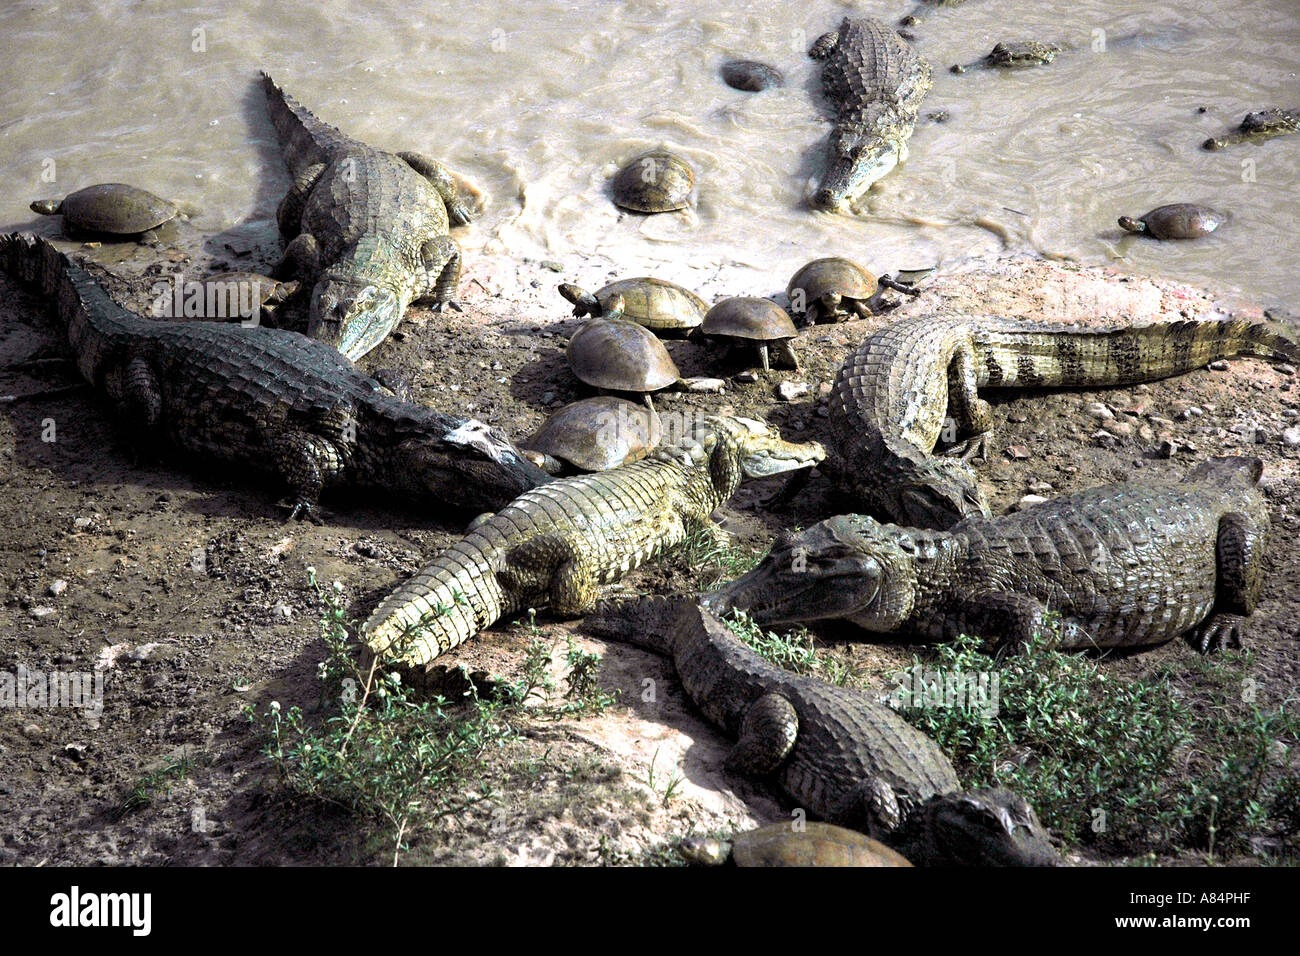 Caimans and unafraid turtles are populous in the wildlife rich ranchlands of Venezuela's plains, the llanos - Stock Image